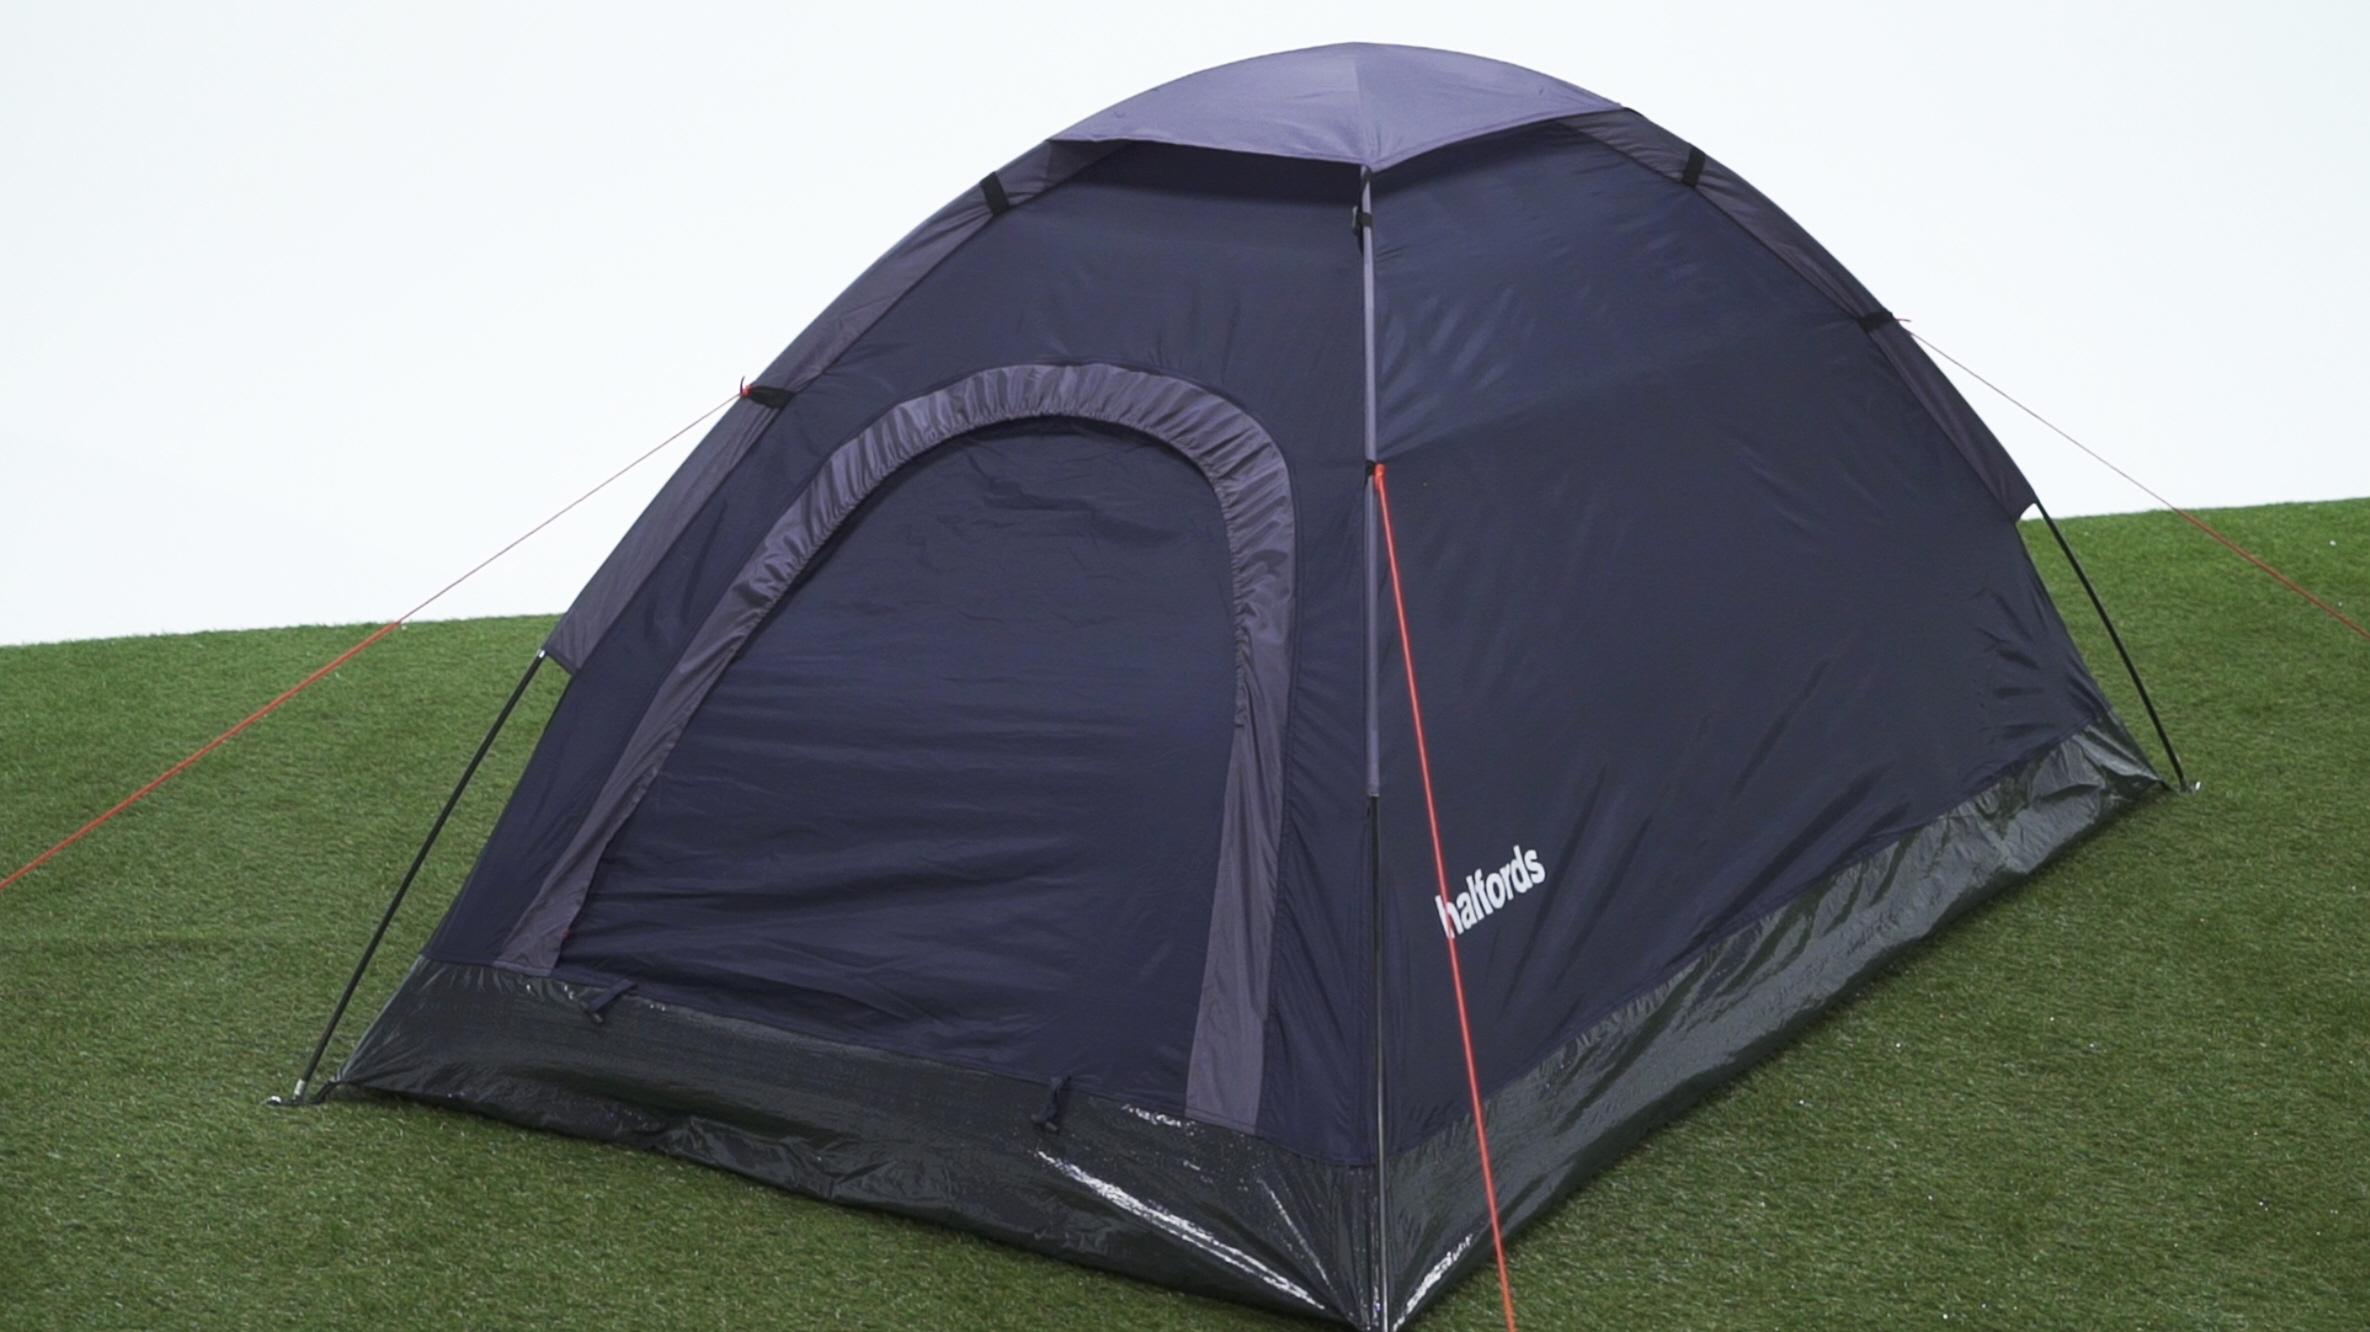 Halfords 2 Man Dome Tent & 2 Man Dome Tent